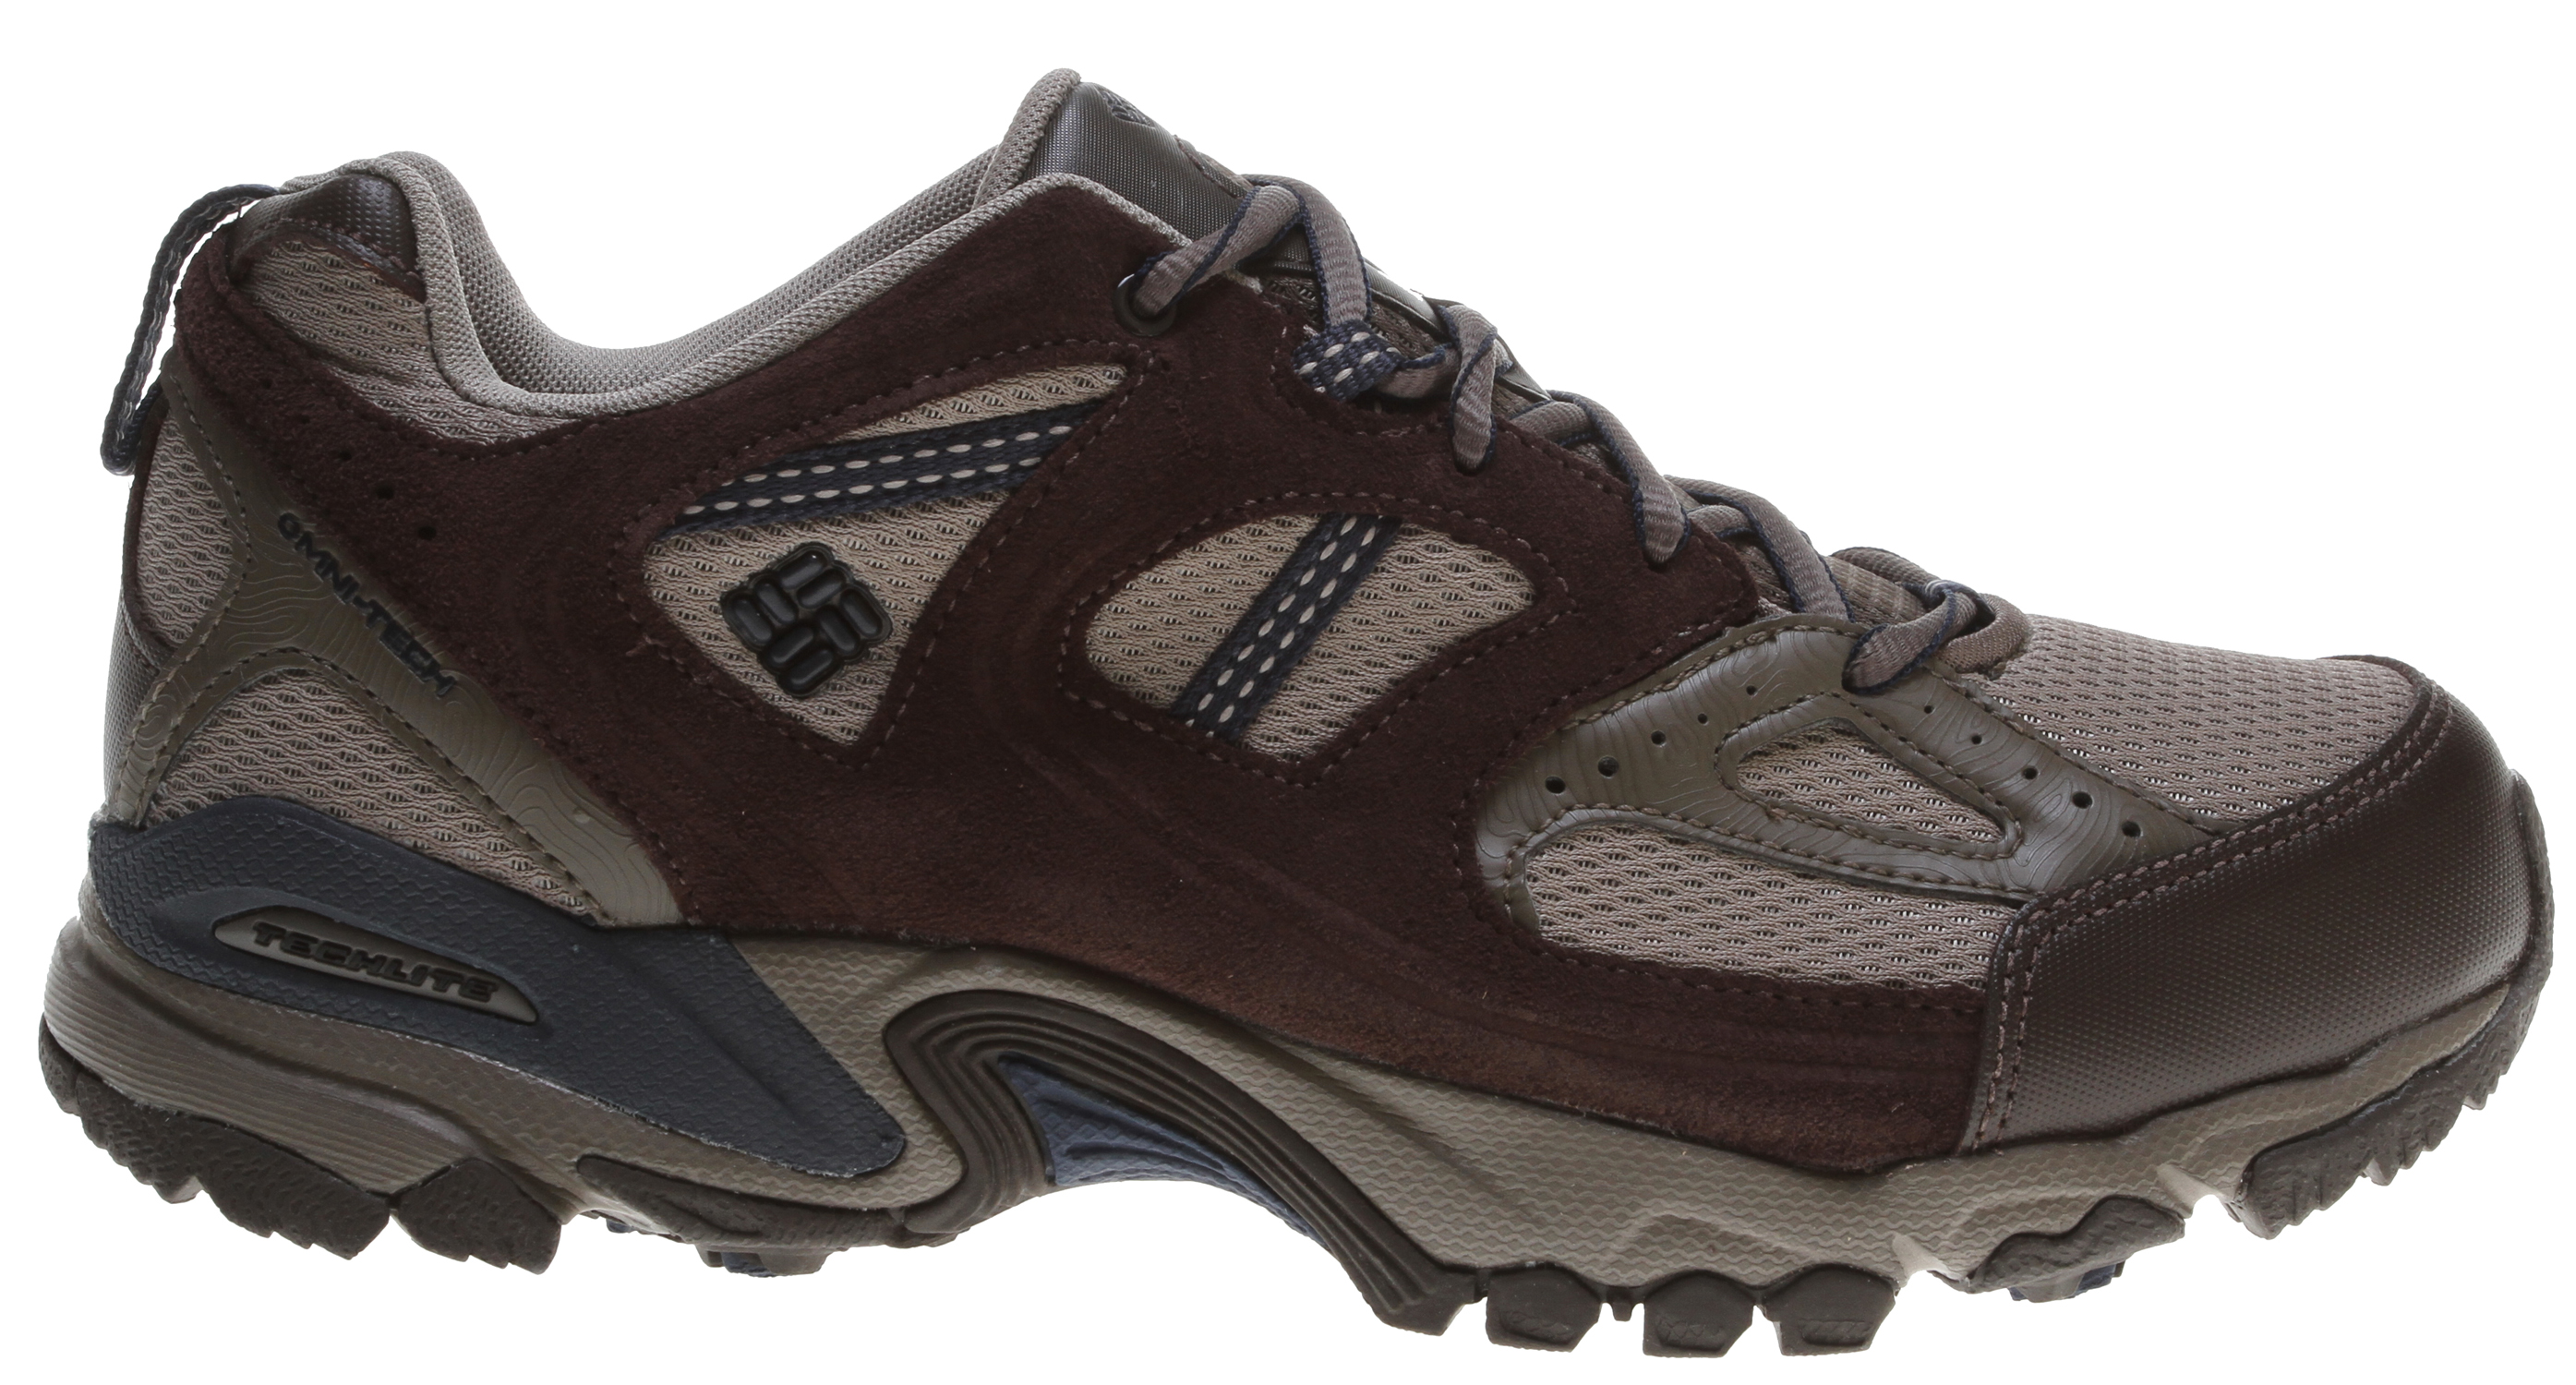 Camp and Hike A lightweight multi-functional shoe geared toward fast hiking and light running.Key Features of the Columbia Wallawalla 2 Low OT Hiking Shoes: UPPER: Combination suede leather, breathable mesh, waterproof Omni-Tech and webbing working together to create a great lock-down on the footbed. MIDSOLE: Multi-density Techlite under foot for exceptional cushioning and support. OUTSOLE: Omni-Grip non-marking outsole designed for a variety of trail surfaces. - $54.95